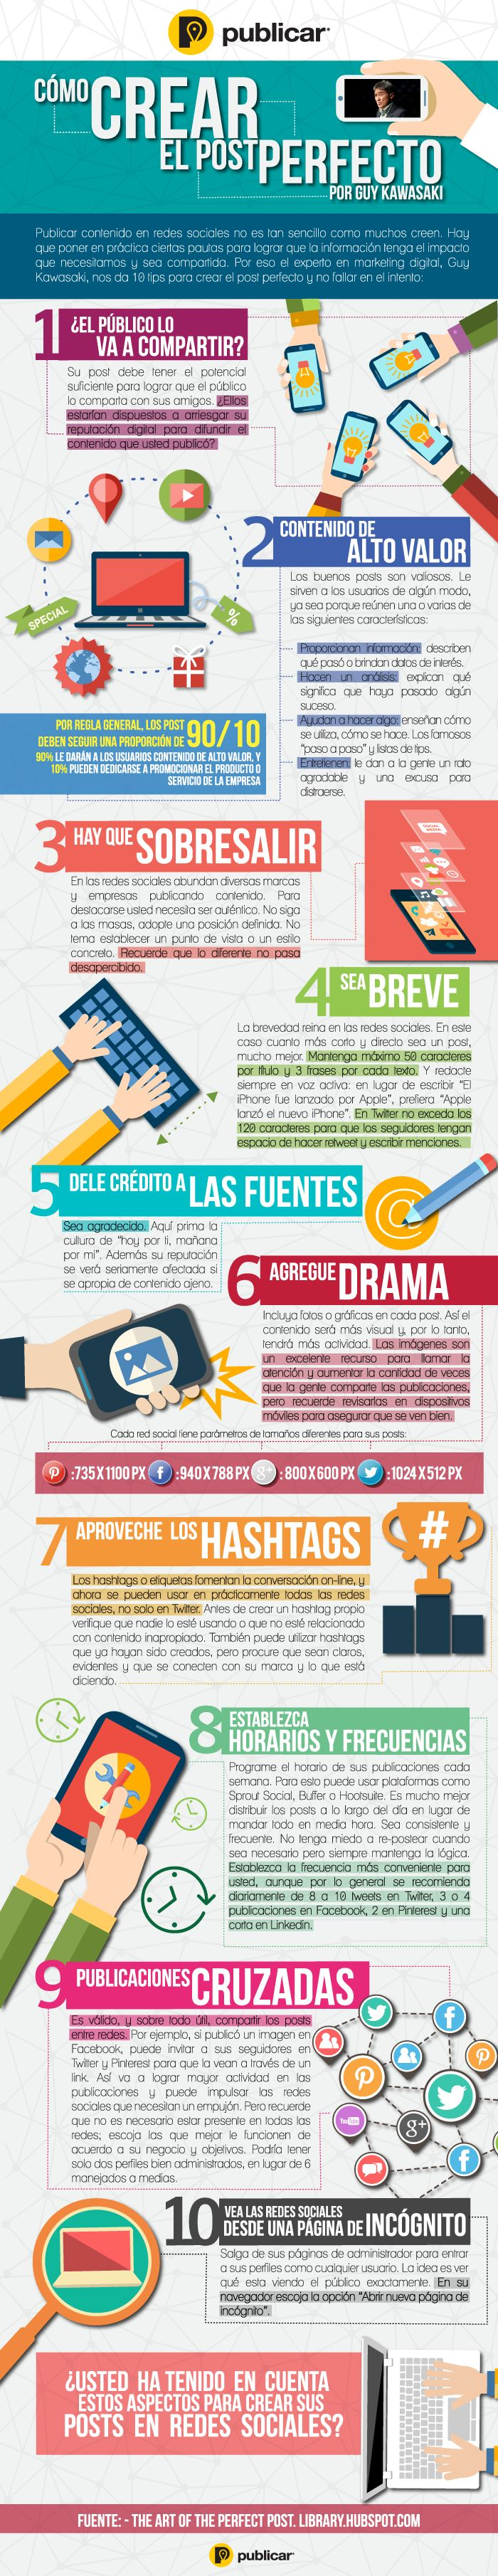 10 Tips para crear el post perfecto en redes sociales